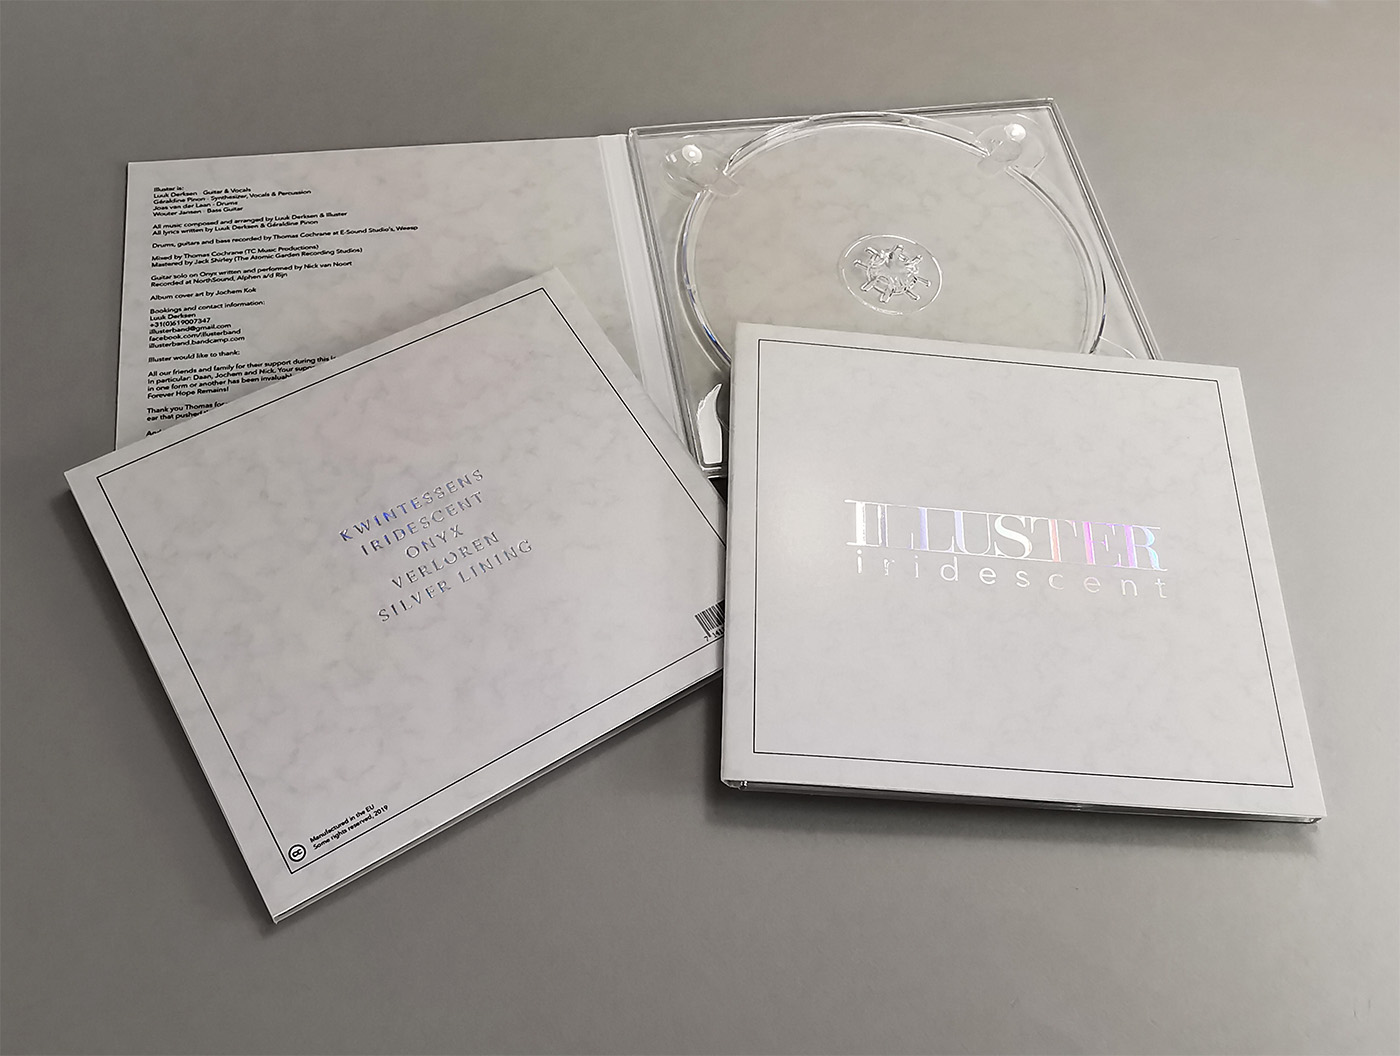 Holographic hot foil printing on the front and rear of CD digipaks